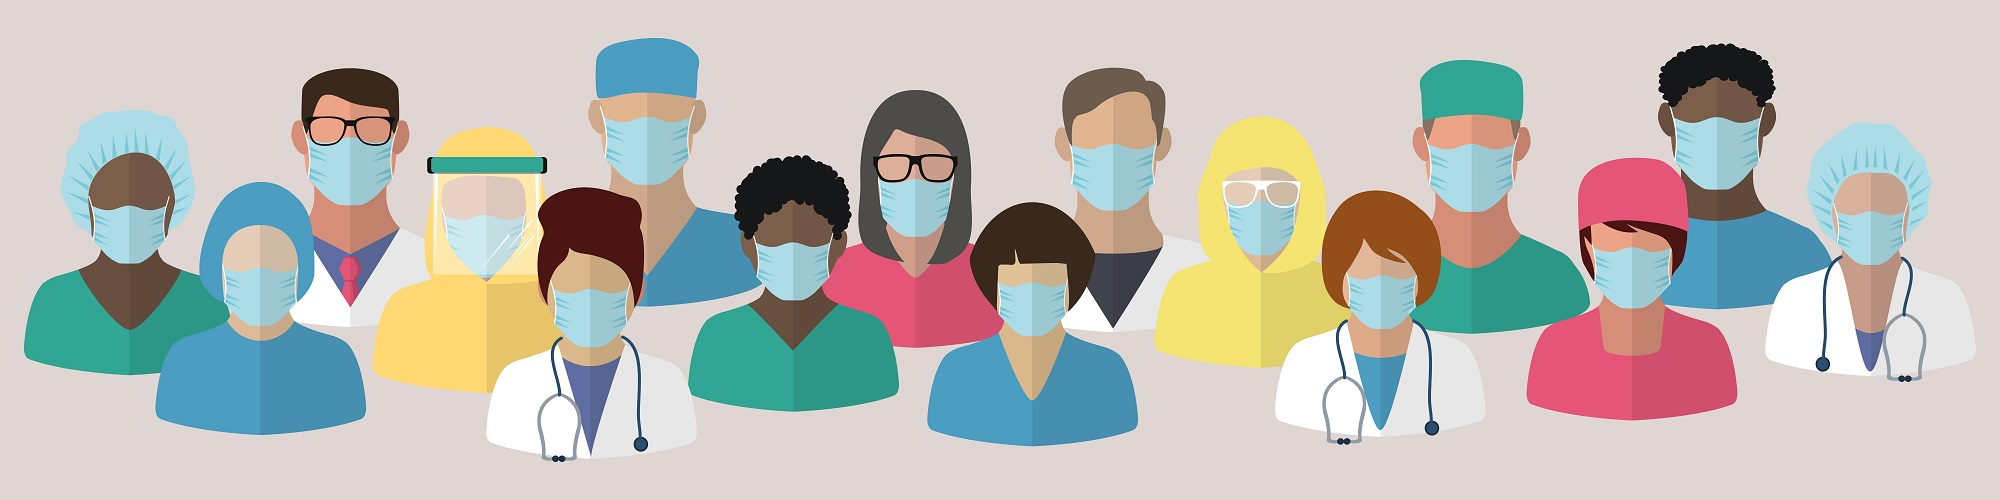 Set icons of doctors and medical staff in masks. Health care concept. Fears of getting coronavirus. Global viral epidemic or pandemic. Flat vector illustration